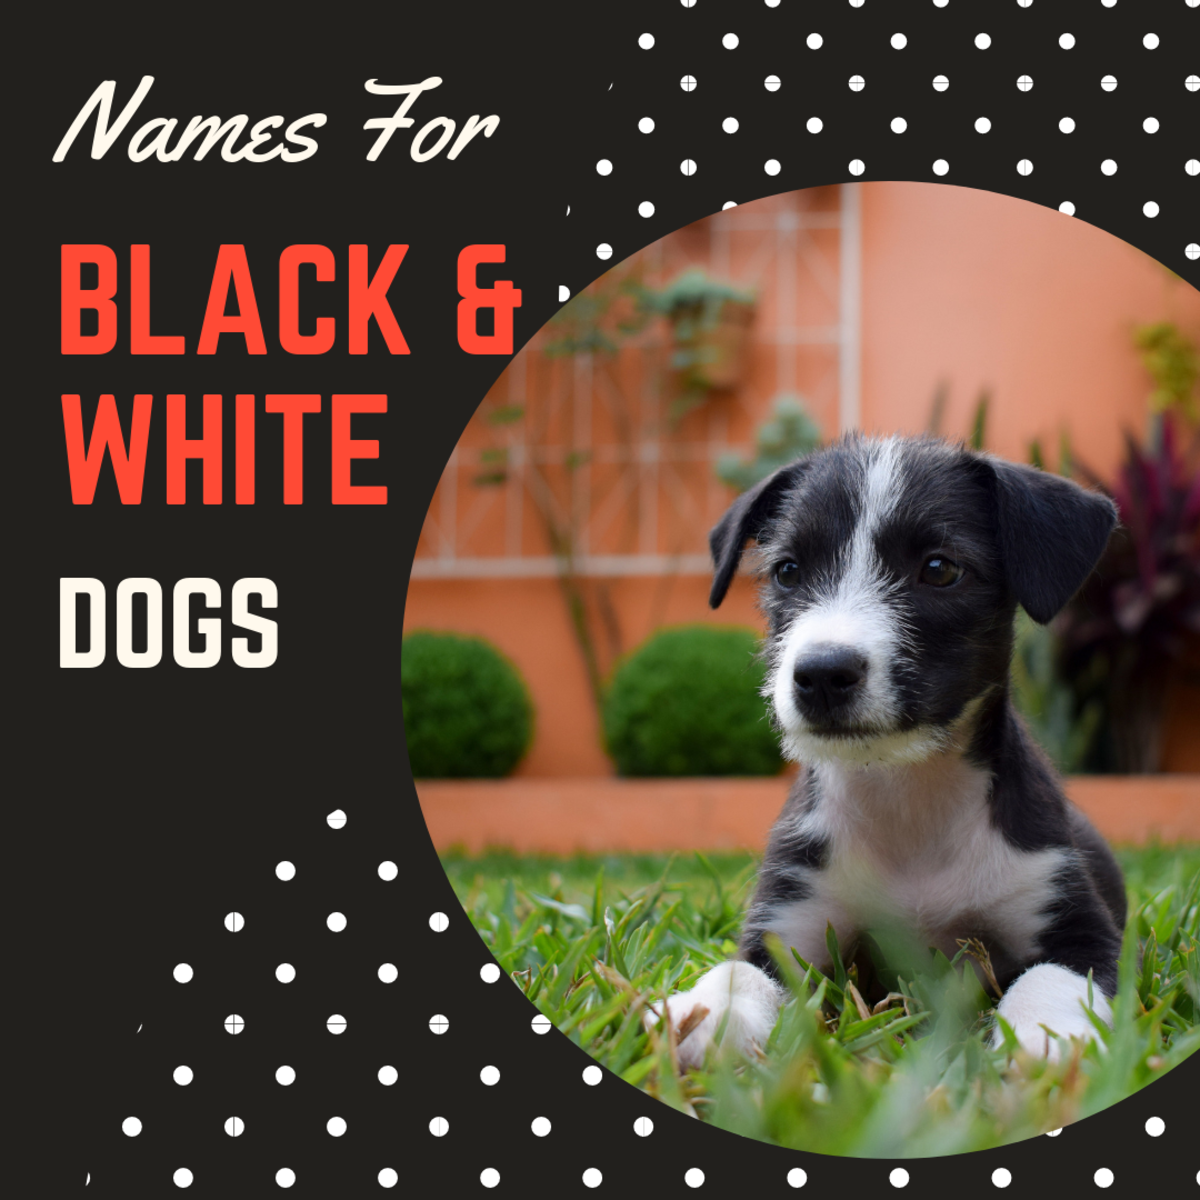 Do you need a cool name for your black and white dog?